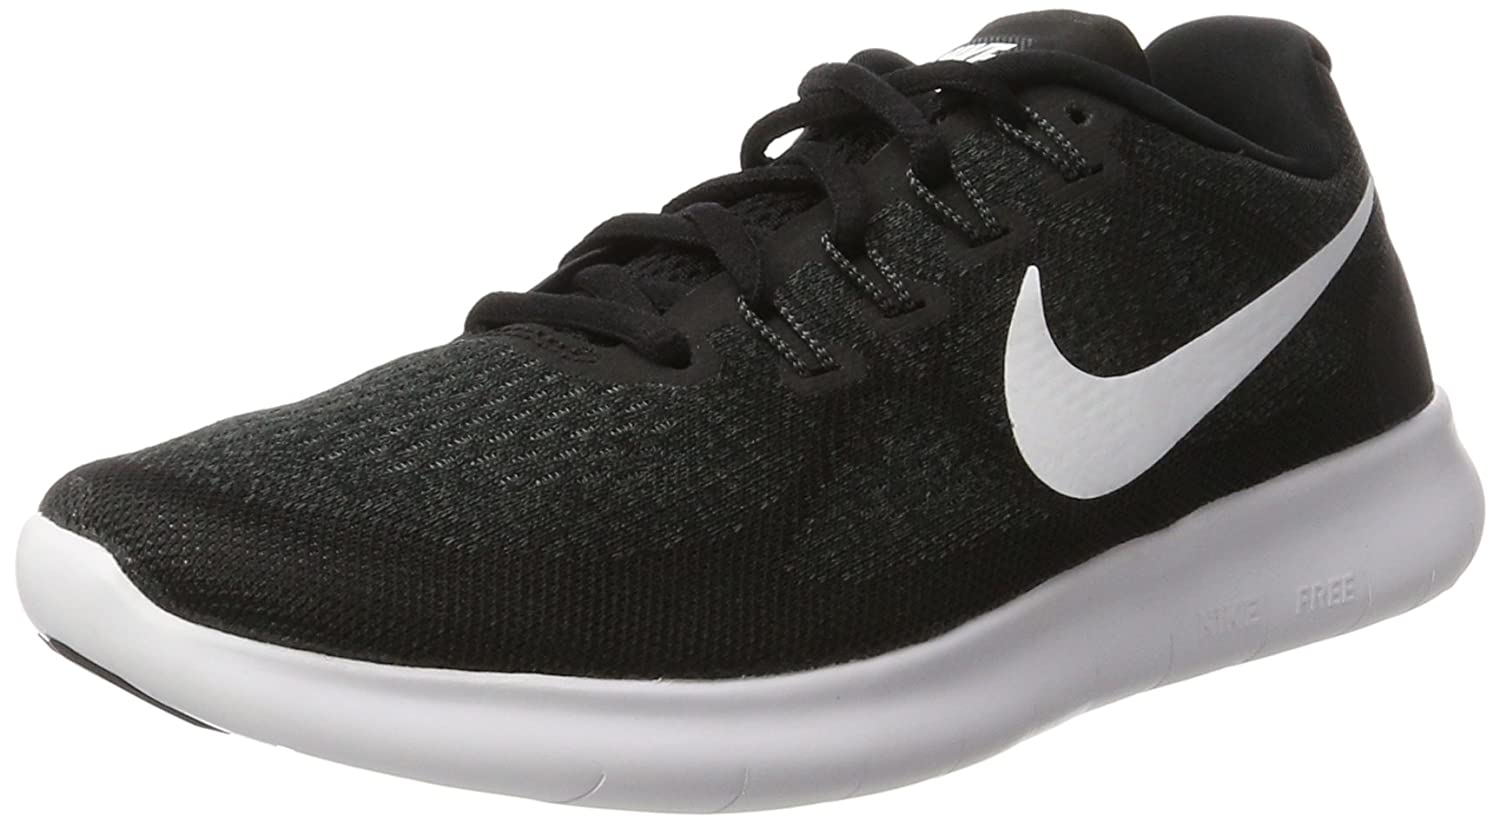 the best attitude 41c3f 4a0b4 Amazon.com   NIKE Men s Free RN Running Shoe   Road Running